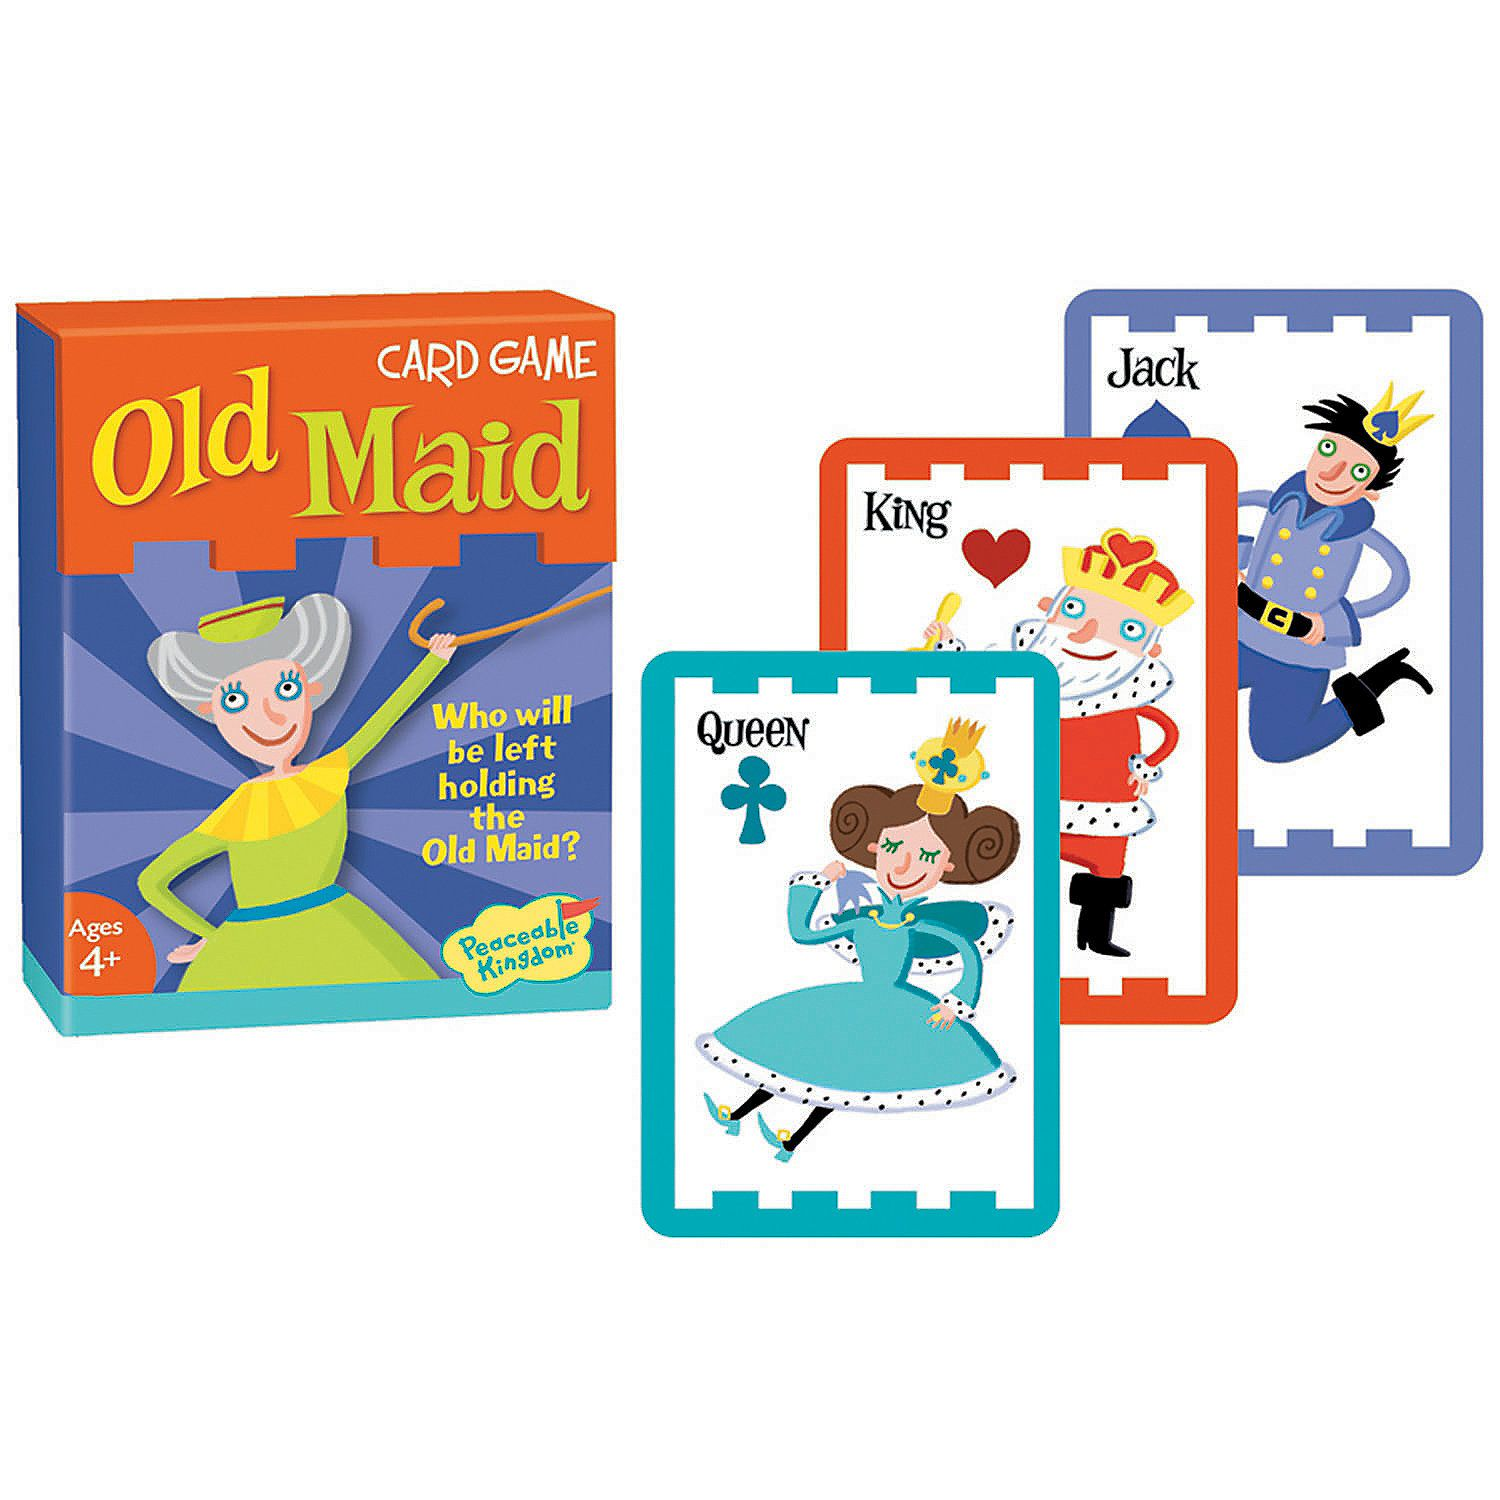 Old Maid Card Game Mindware In 2021 Classic Card Games Card Games For Kids Card Games